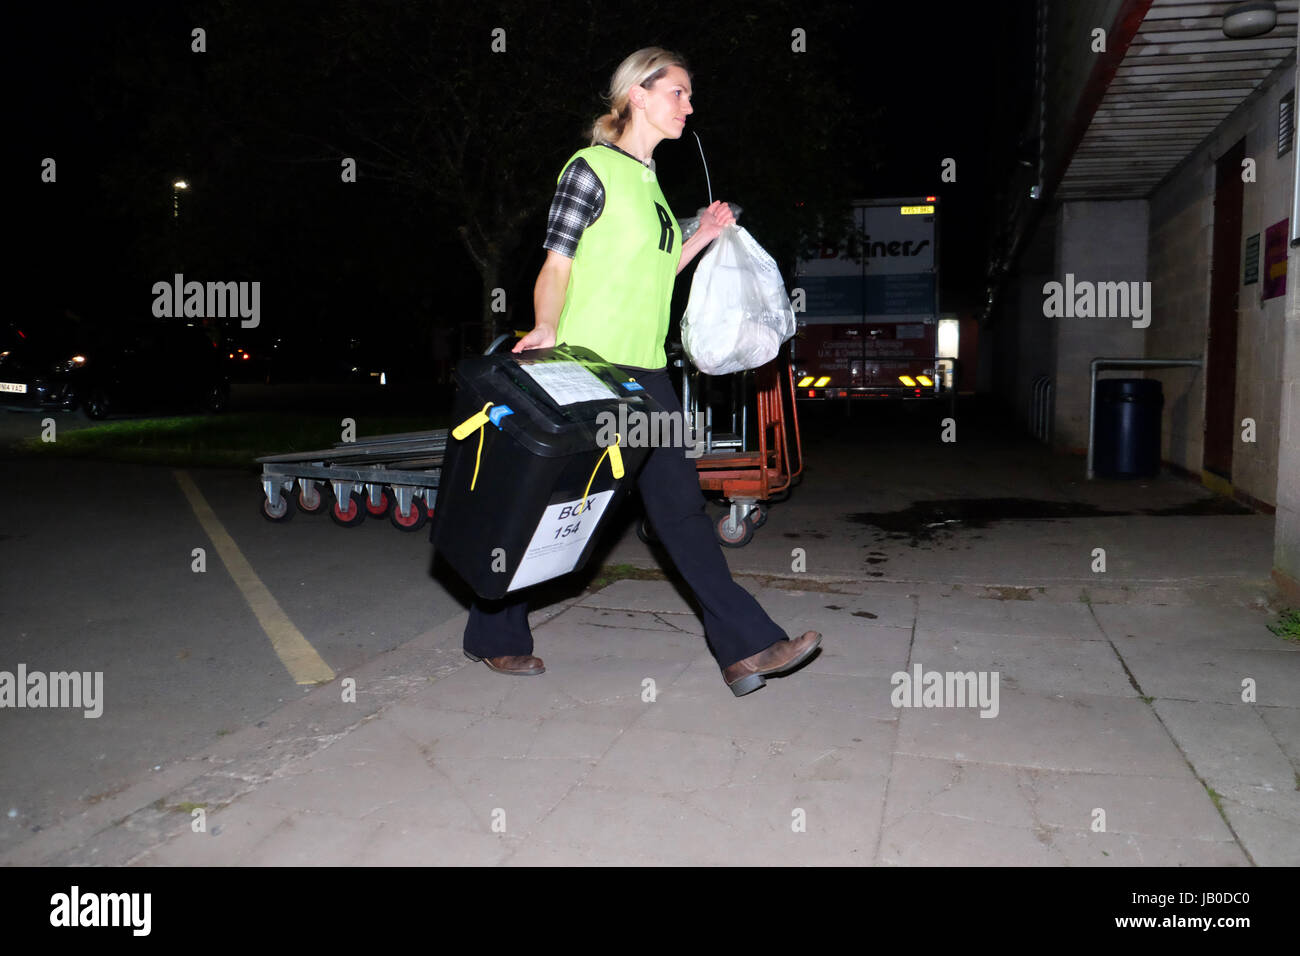 Hereford, Herefordshire, UK. 8th June, 2017. The first ballot boxes arrive at the election count centre in Hereford - Stock Image